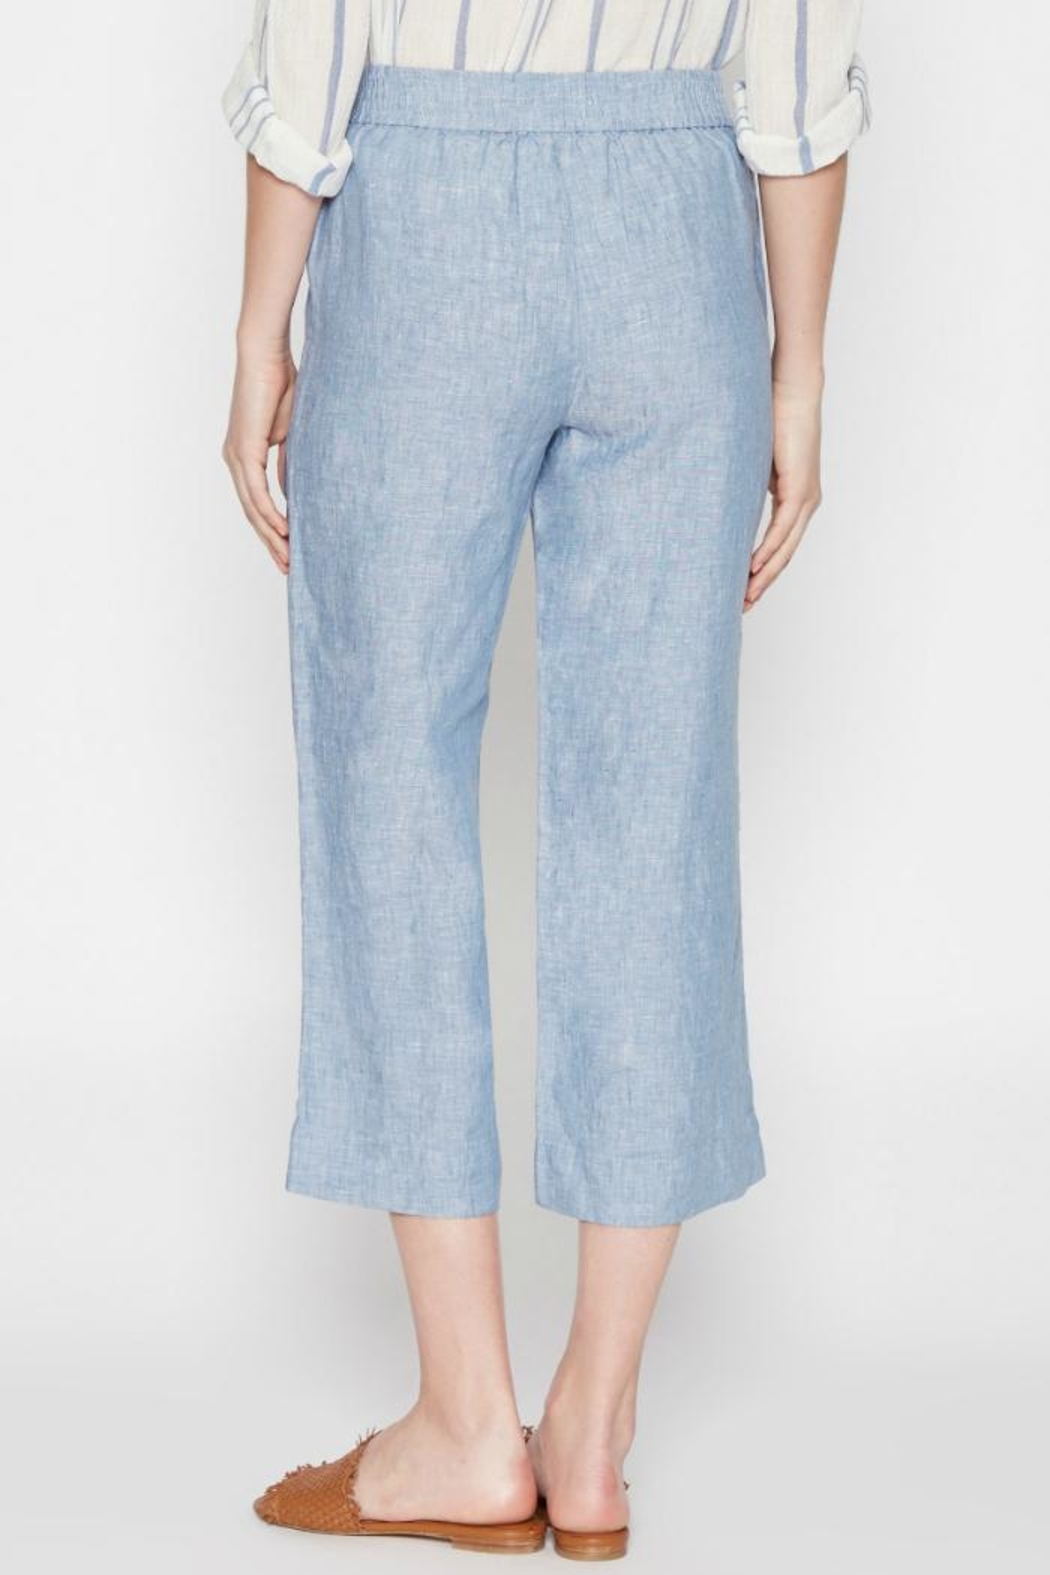 Joie Azelie Linen Pants - Side Cropped Image